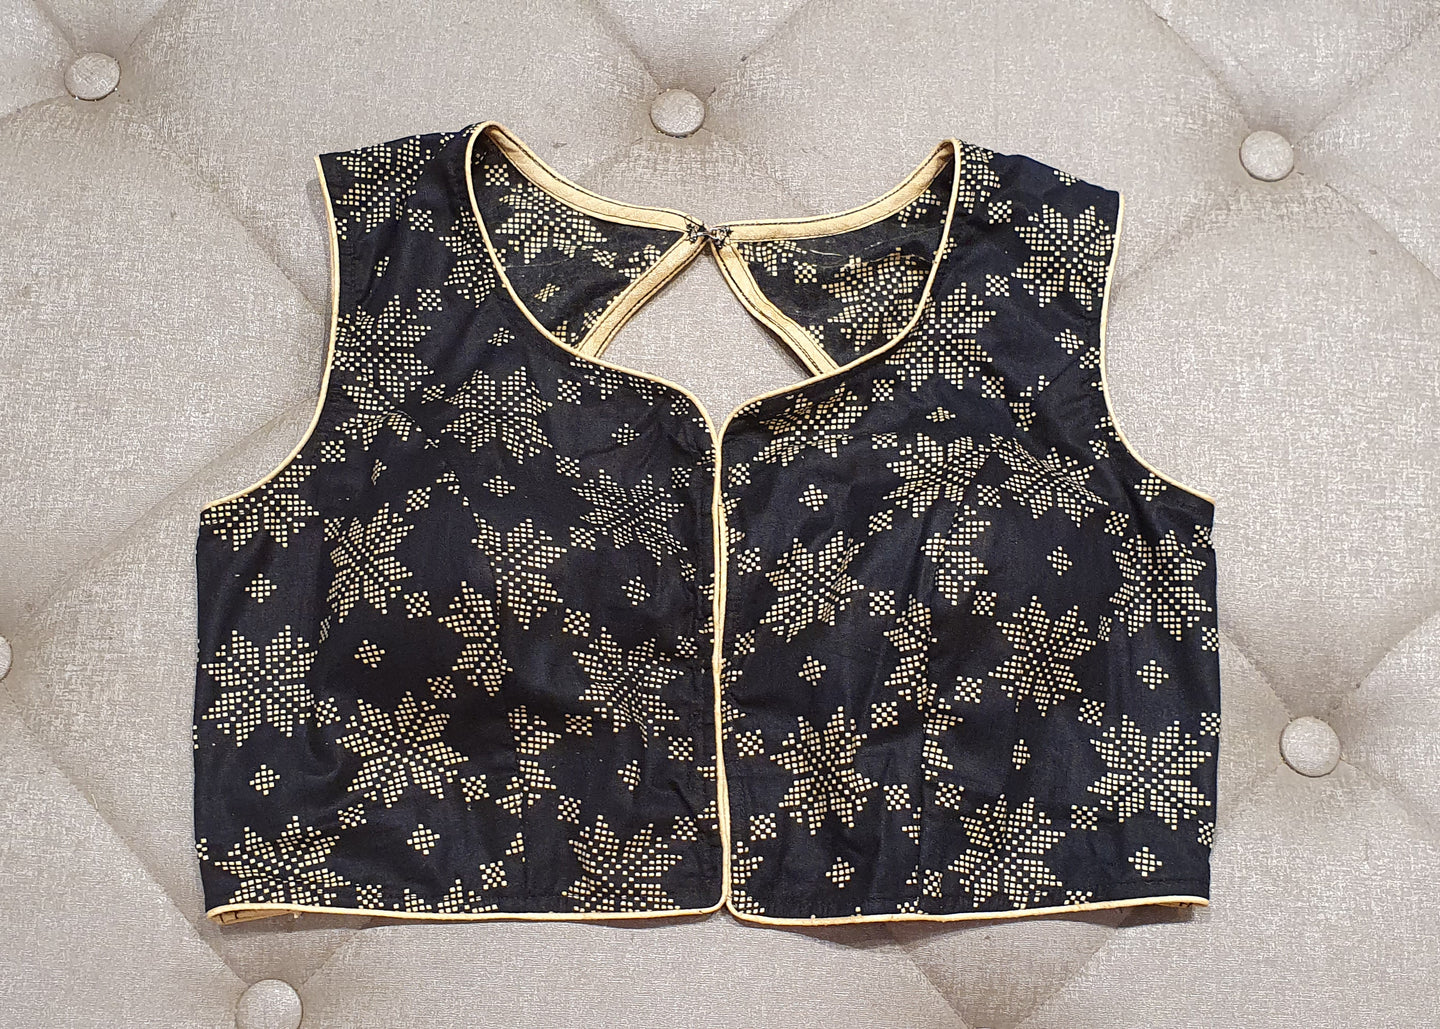 Black Designer Blouse with White Geometric Patterns - Front Side